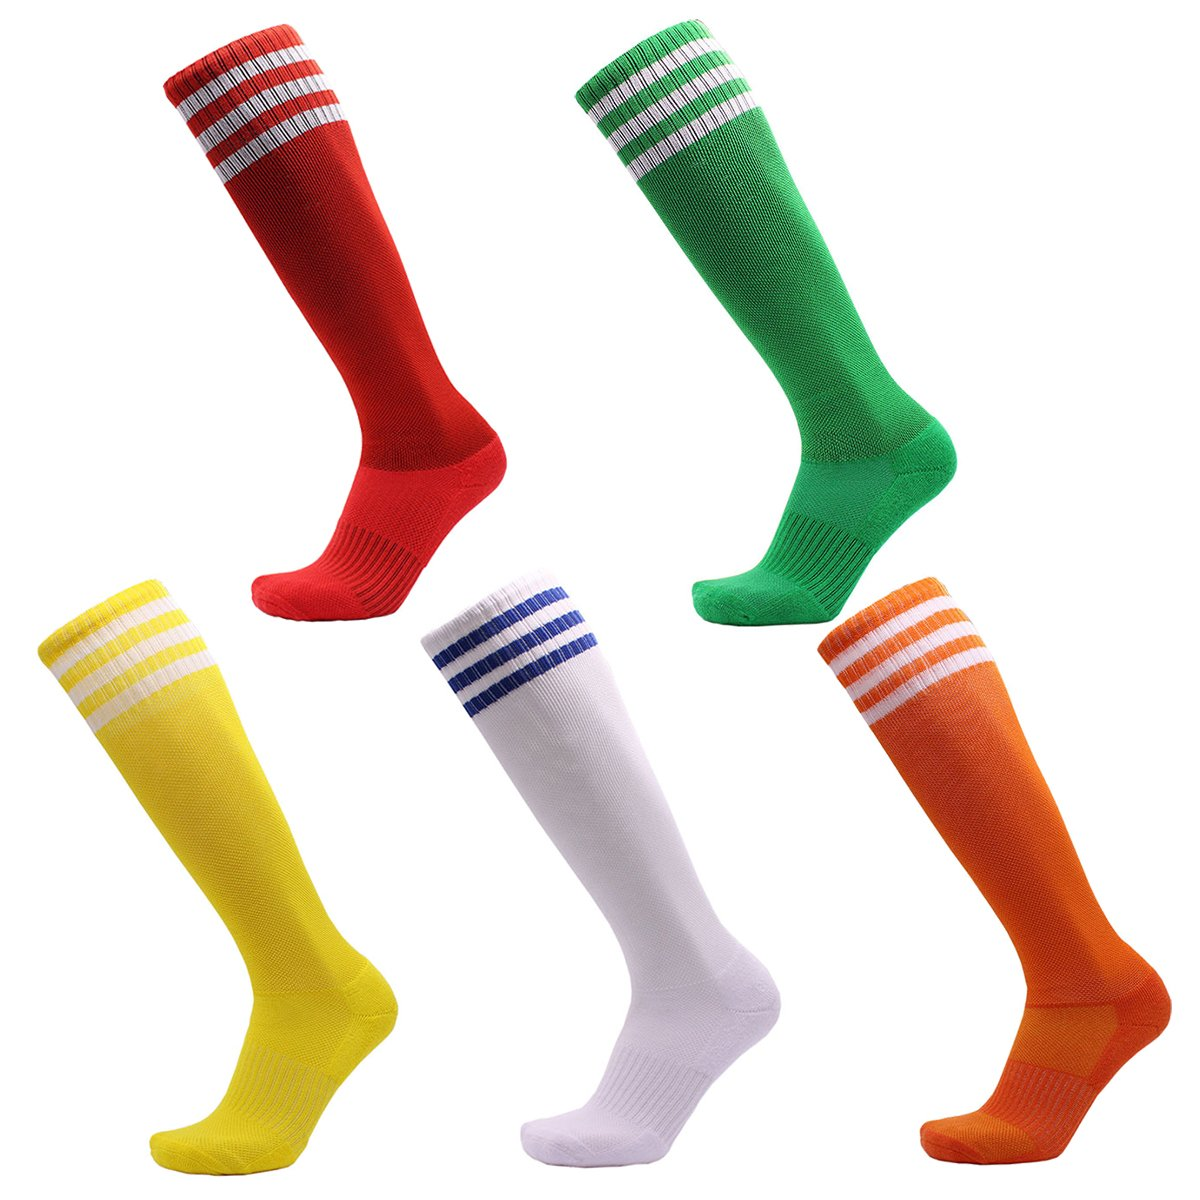 VWU 5 Pairs Unisex Knee High 3 Three Stripes Athletic Soccer Football Tube Socks